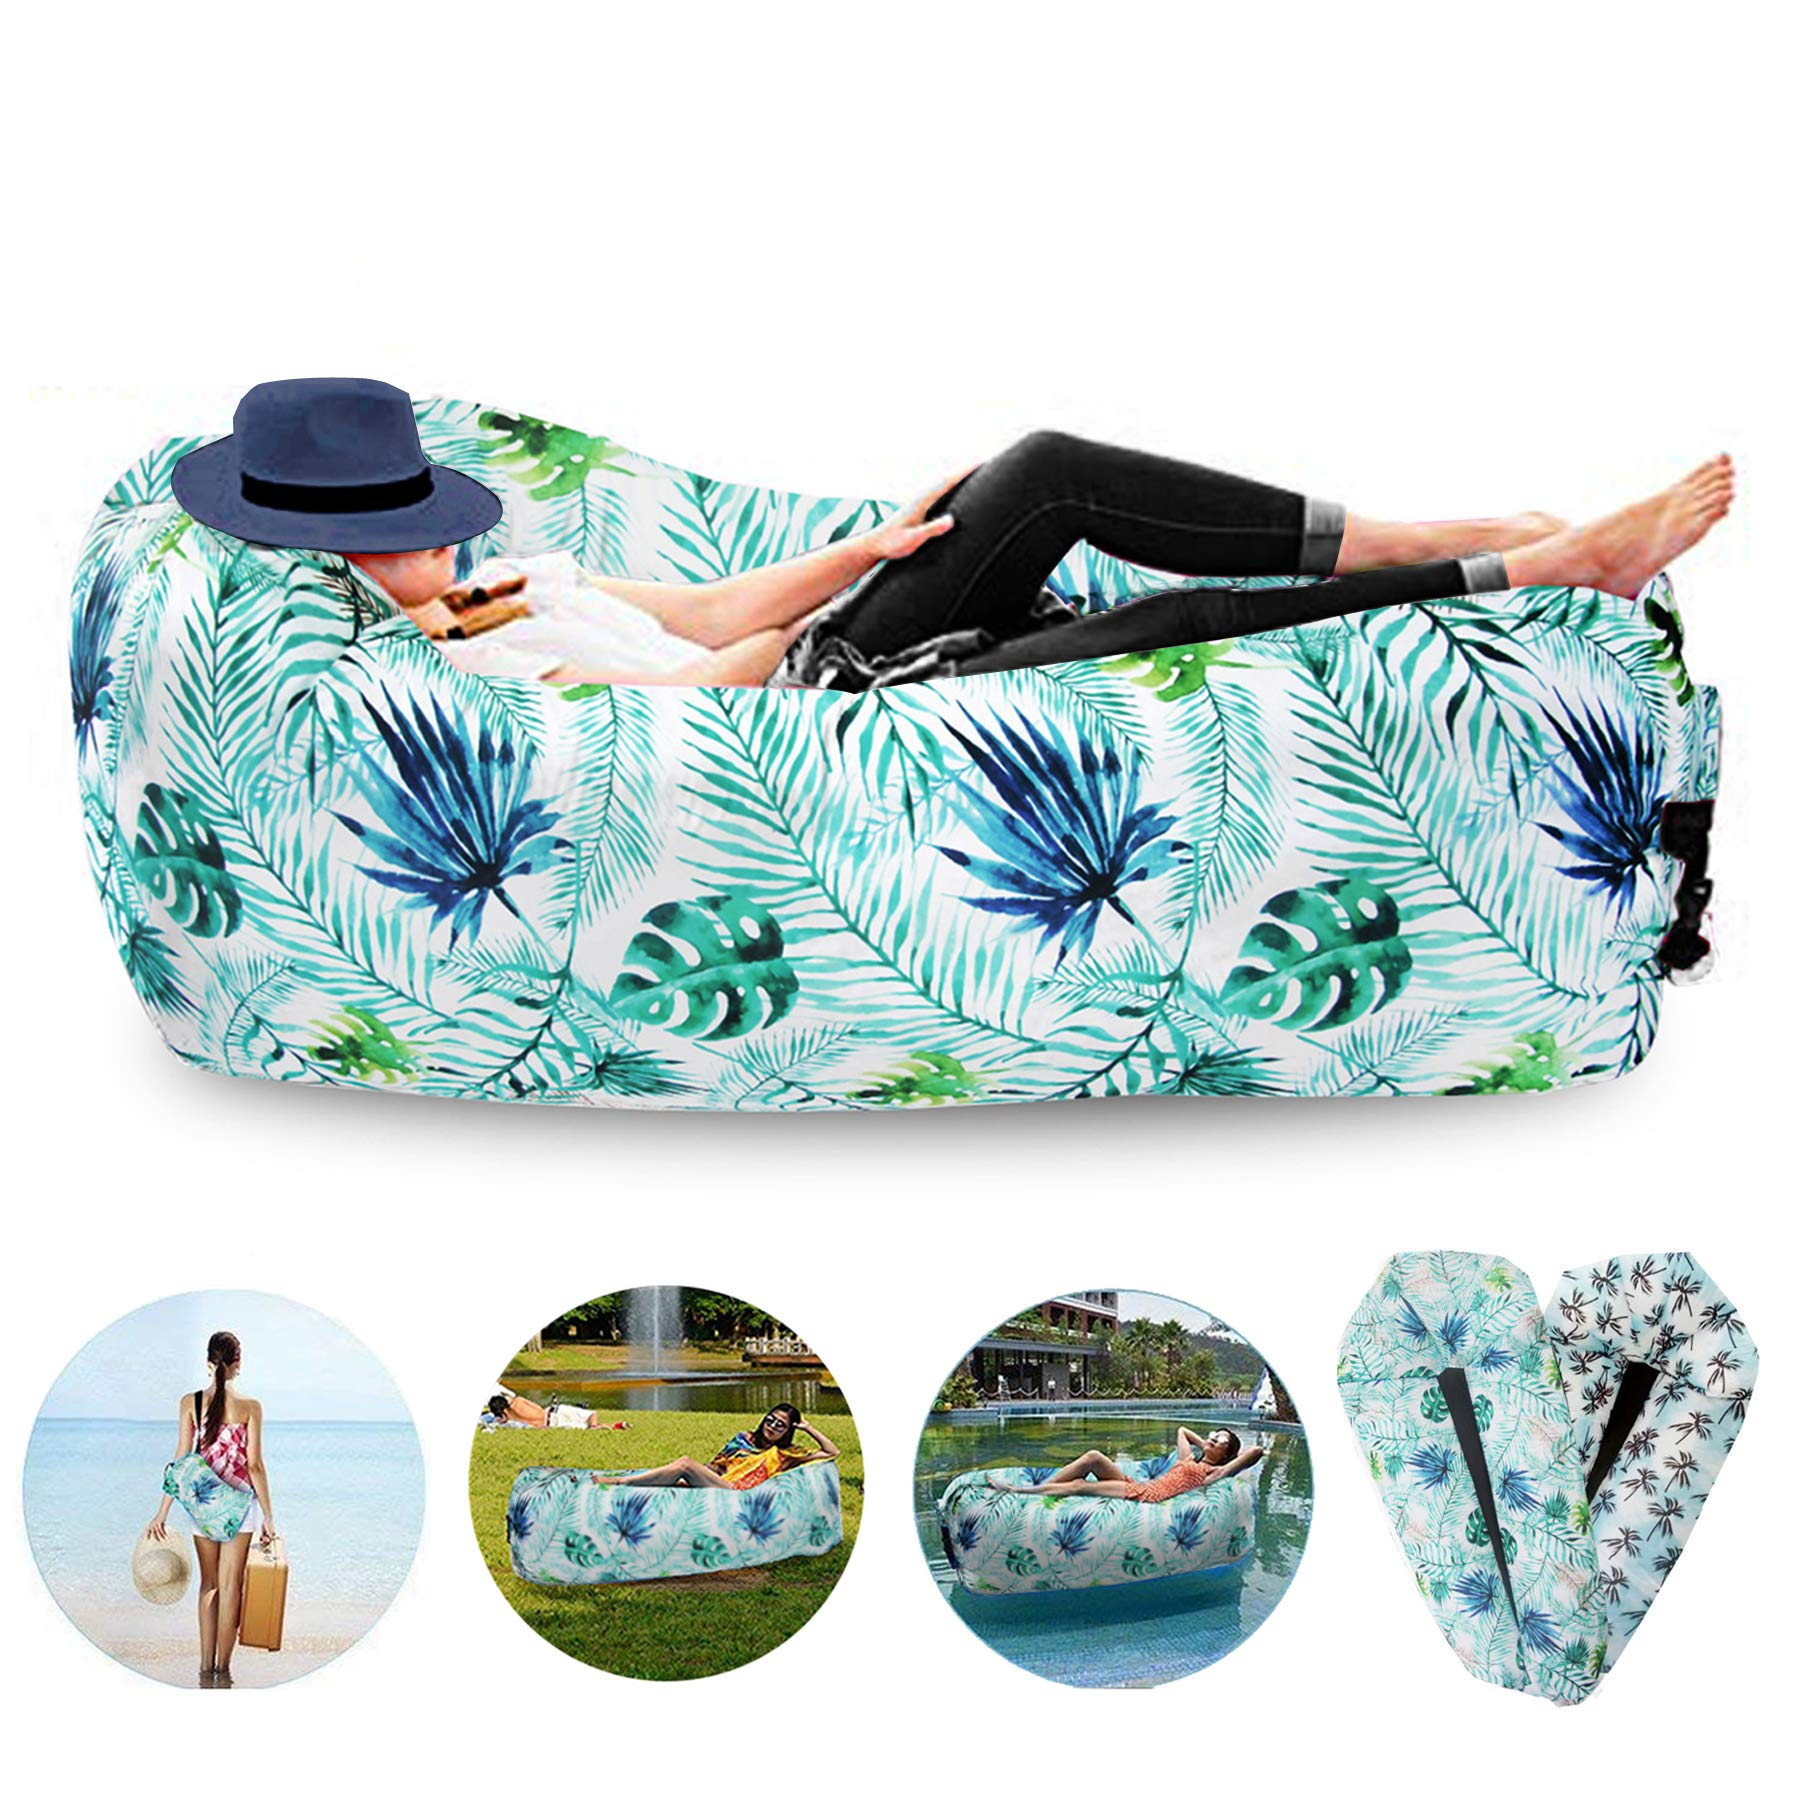 FORNY Inflatable Air Sofa Lounger Hammock Floating Couch Water Proof Pool Toy 2.0 for Beach Camping Picnics by FORNY